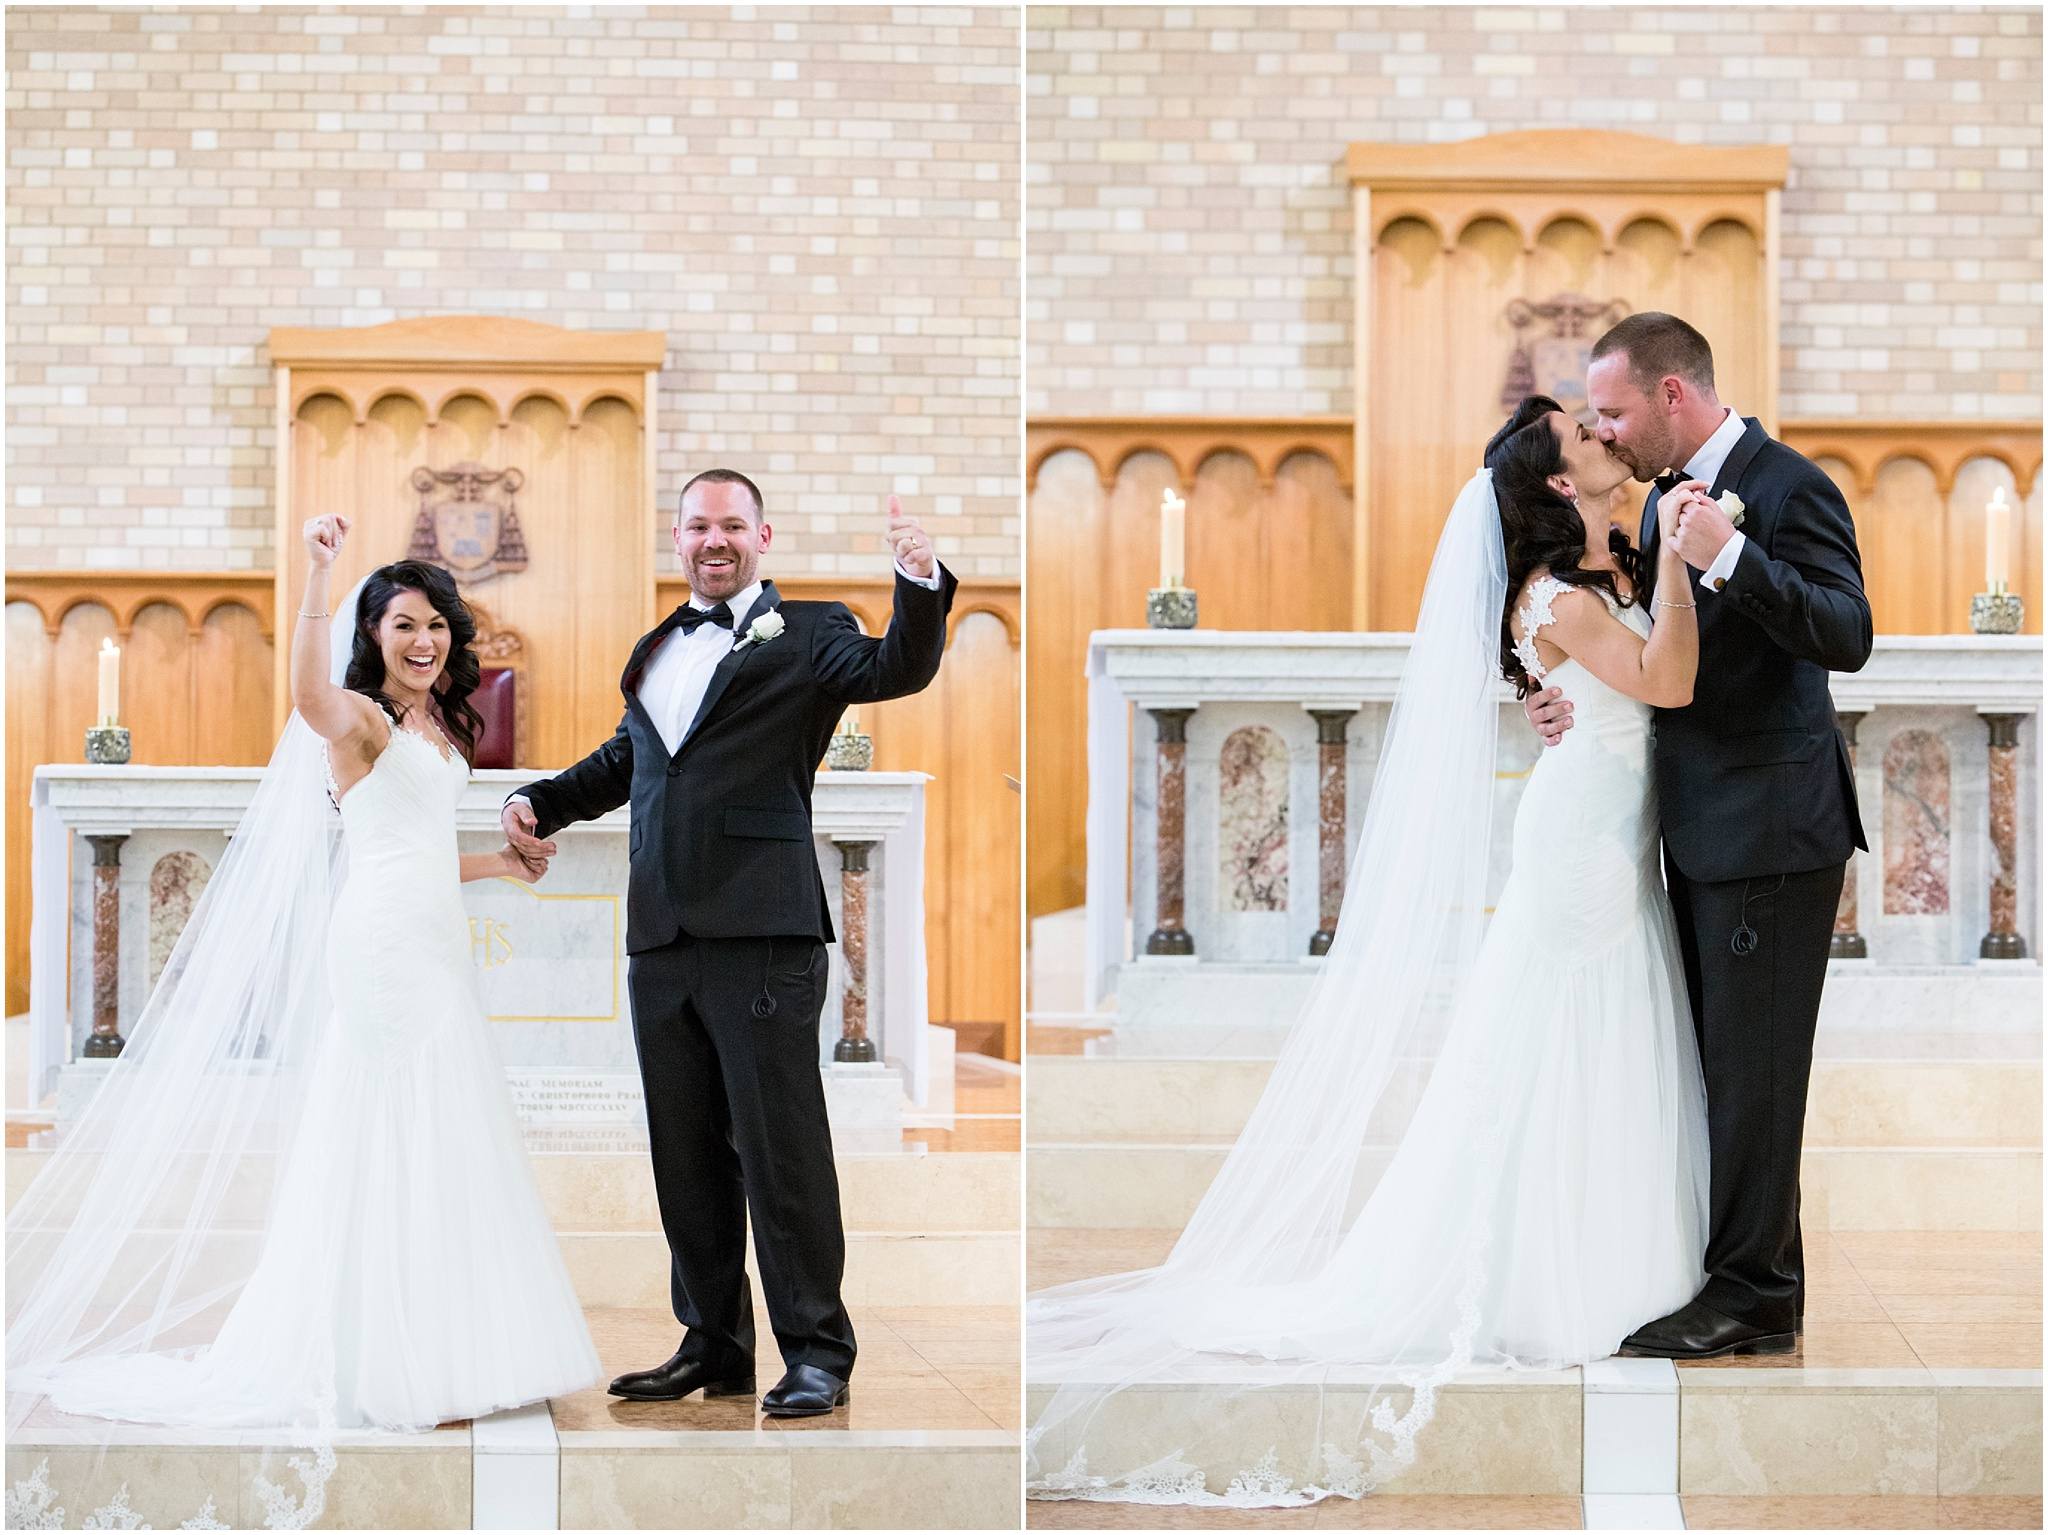 Bride and groom celebrate their marriage by kissing and cheering with hands in the air.